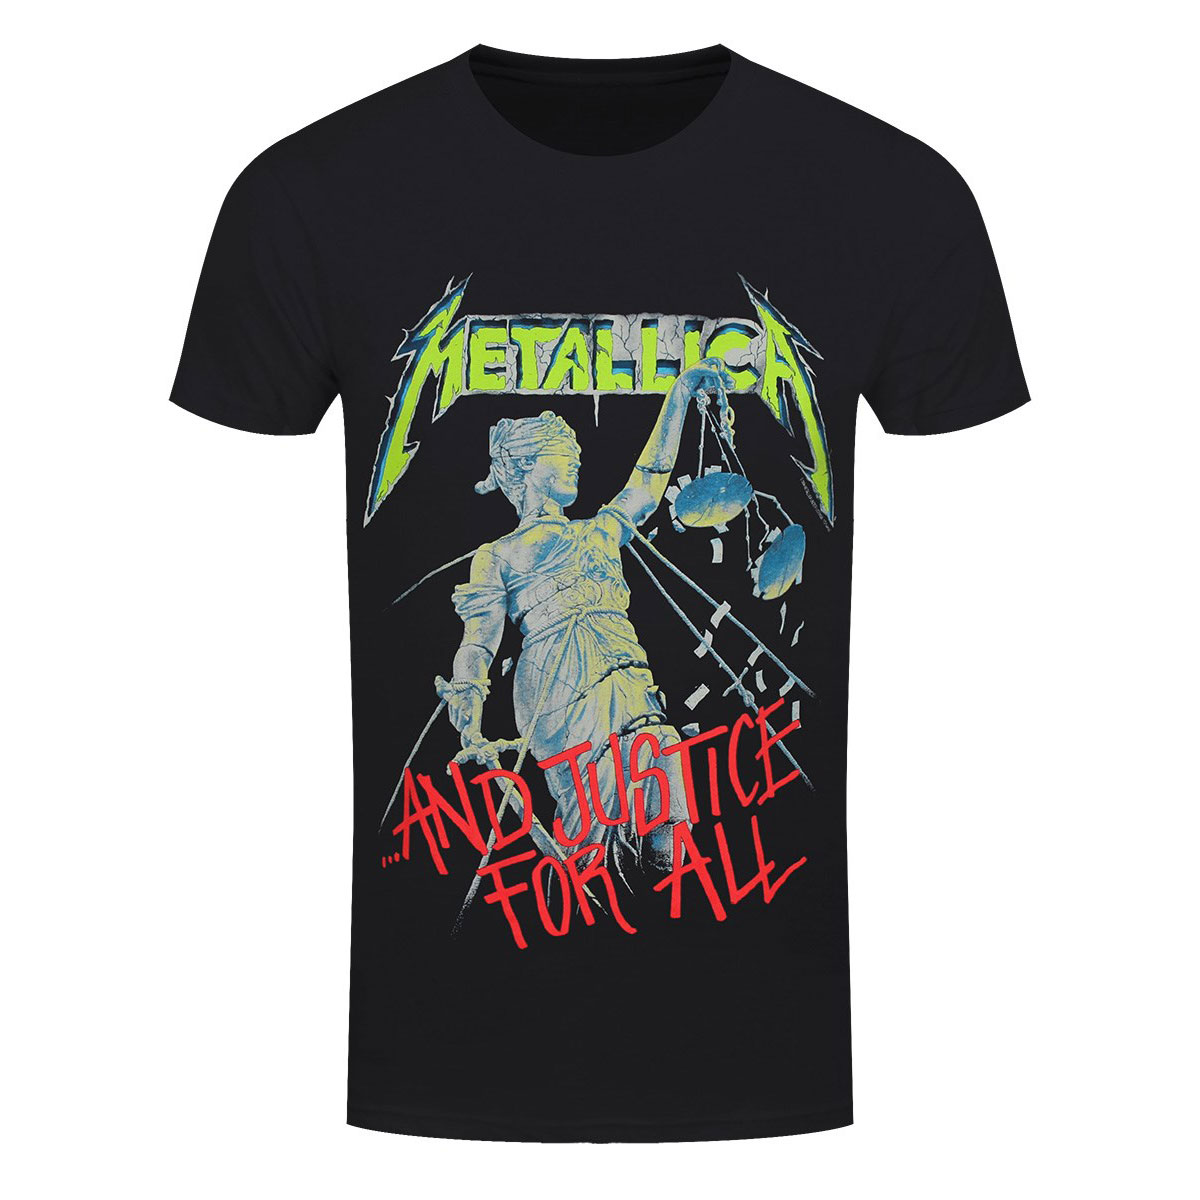 a486df74 Details about Official Metallica And Justice For All Rock Band T-Shirt